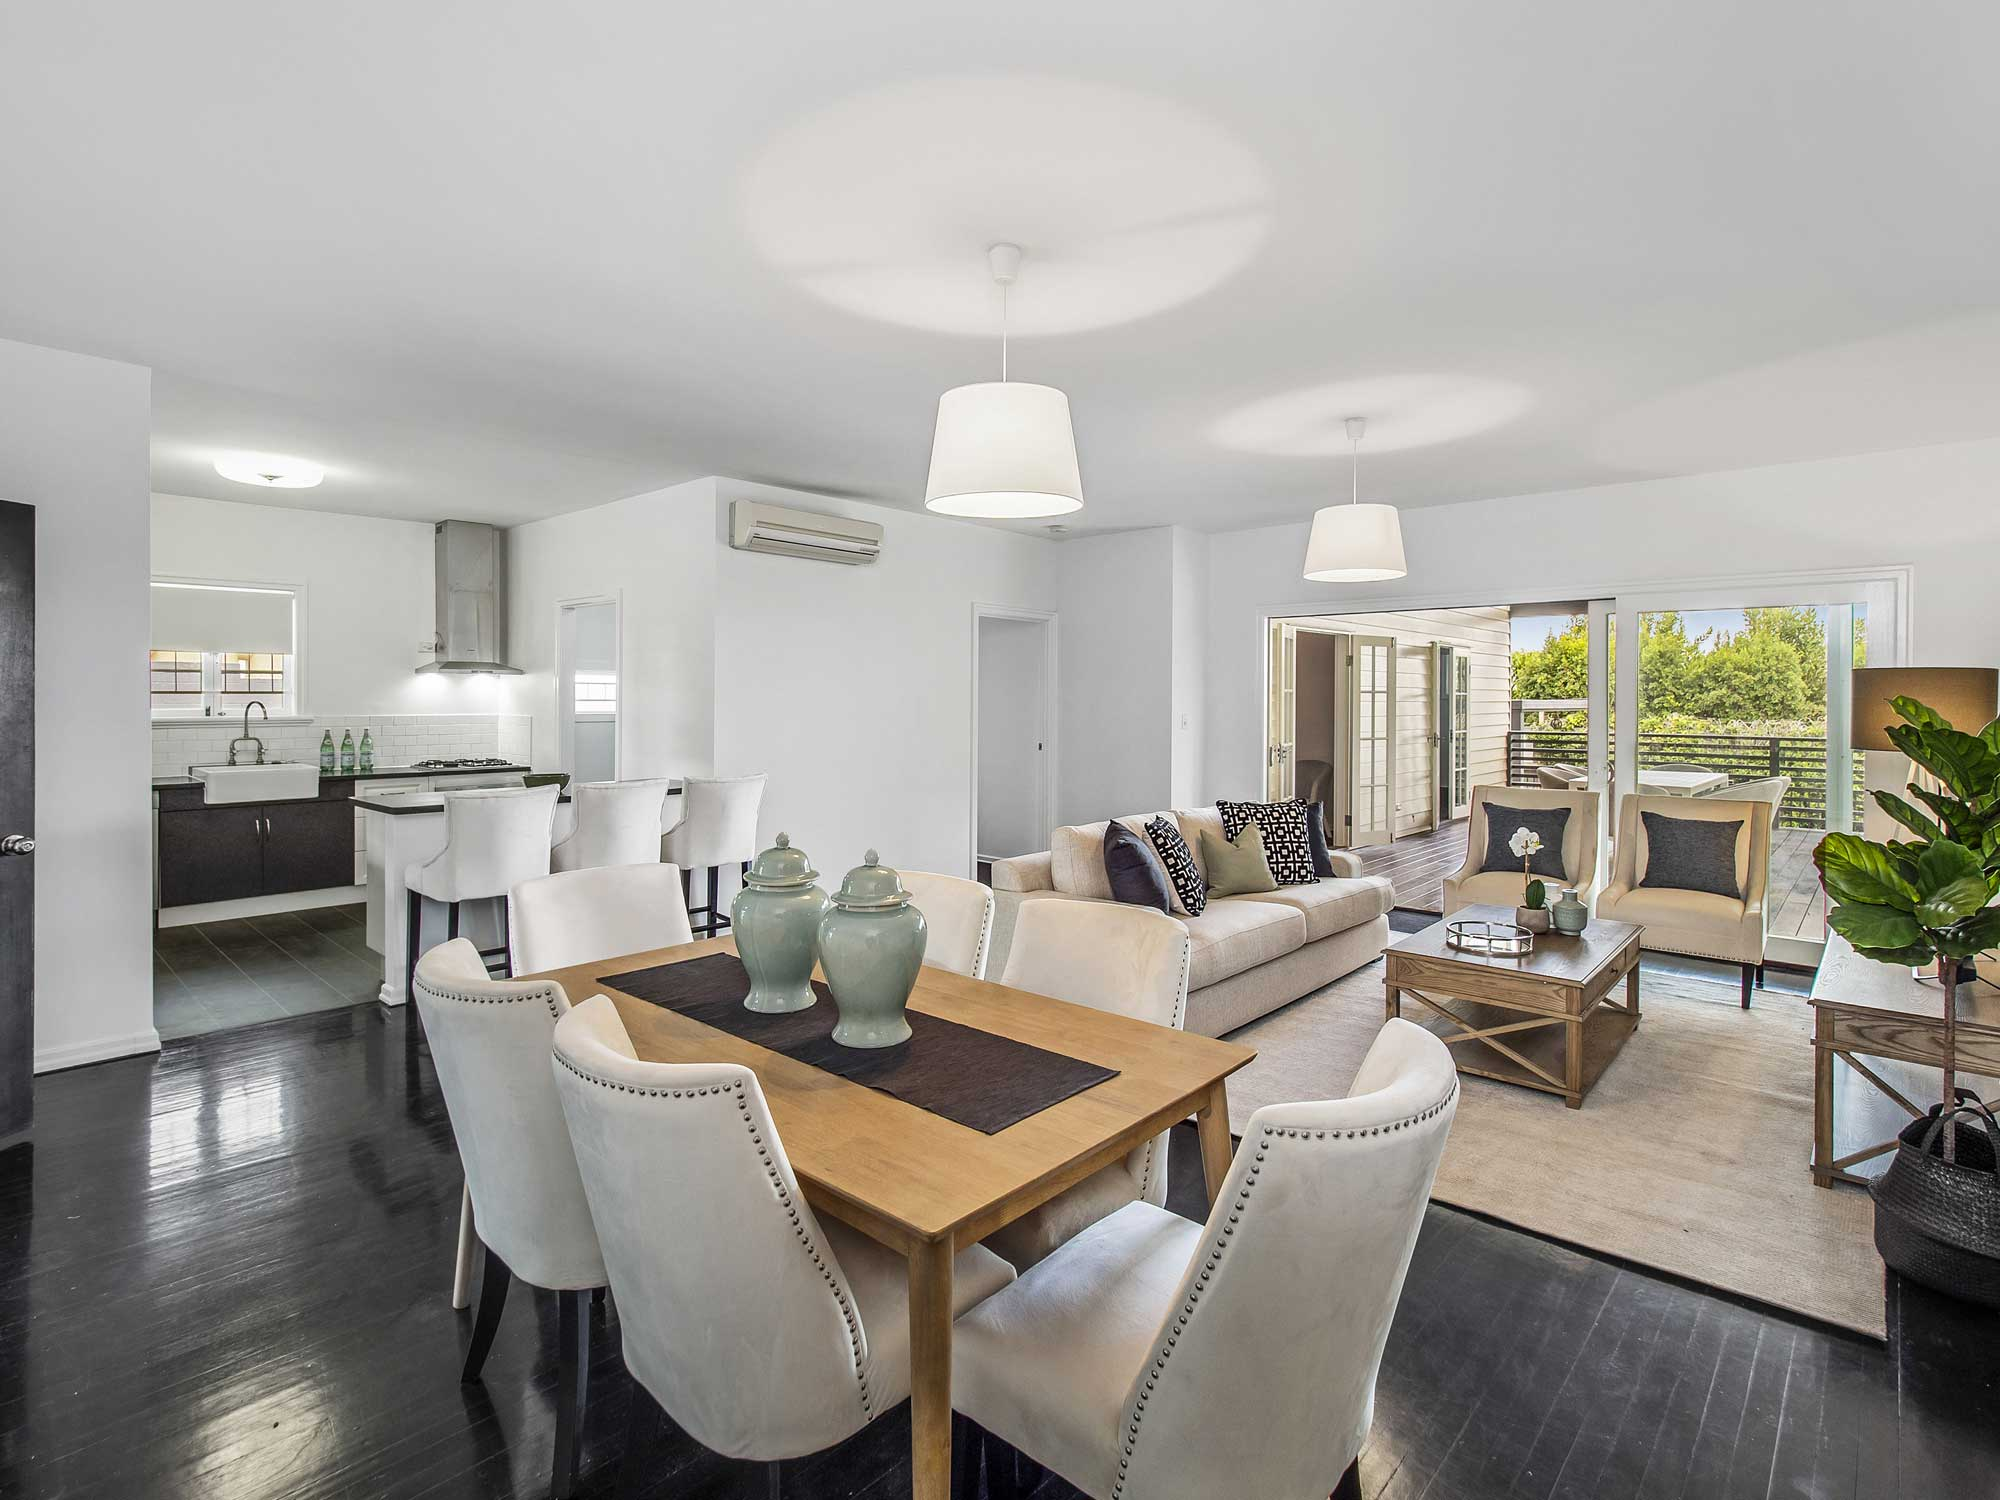 Capturing the interior living spaces -  Photographing a new property listing at Wavell Heights Brisbane